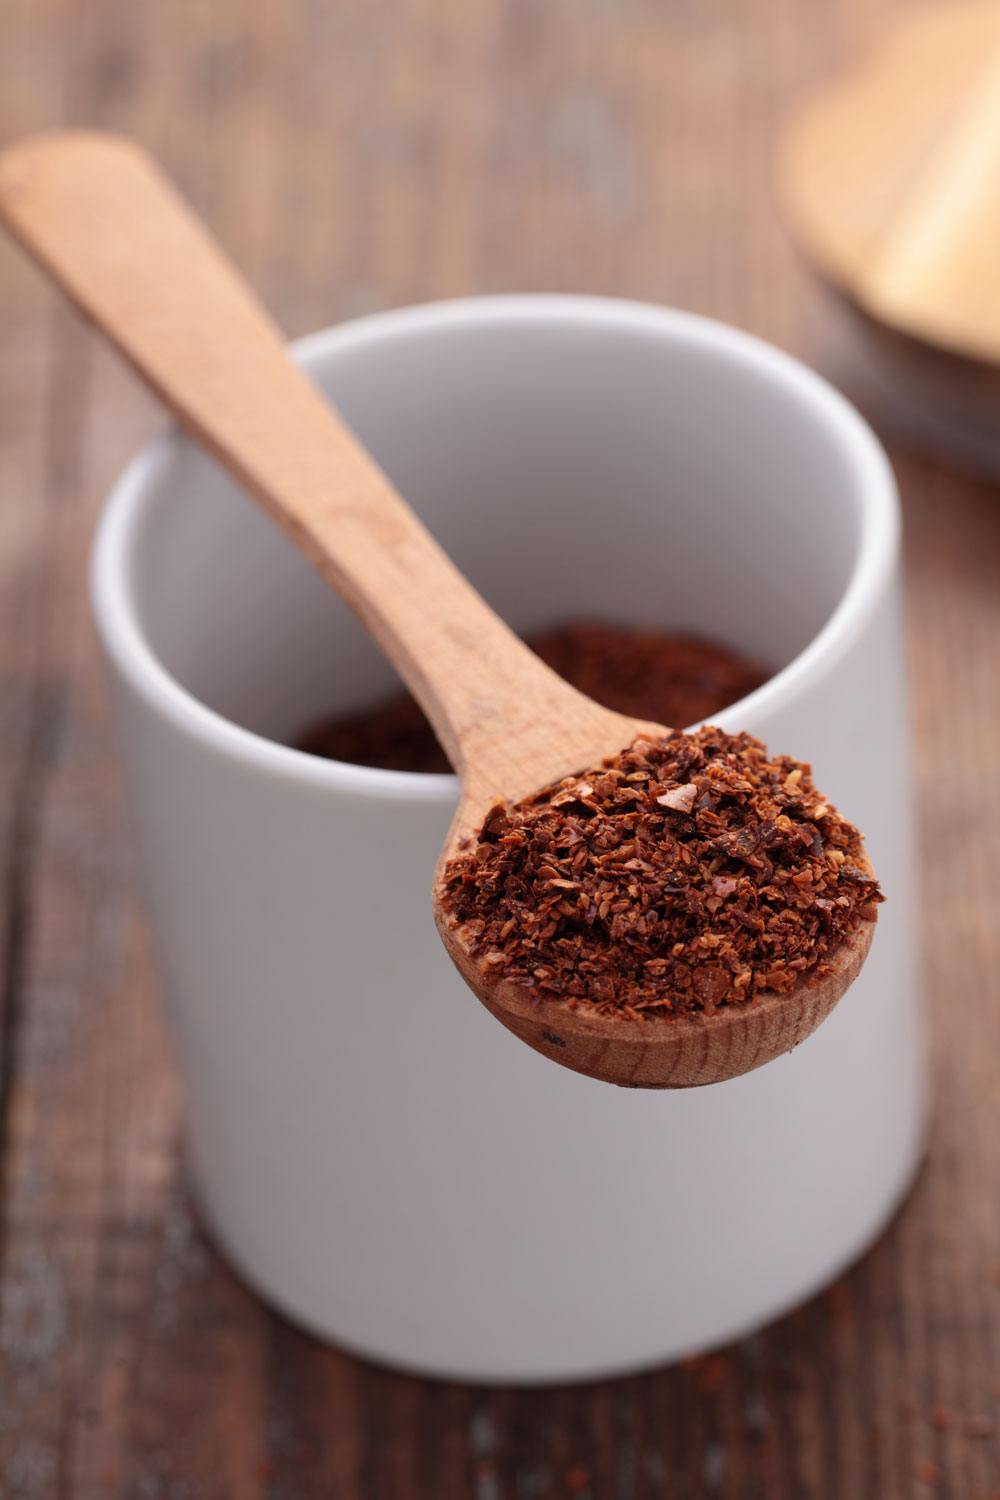 A cup of Aleppo pepper and a spoon of Aleppo pepper